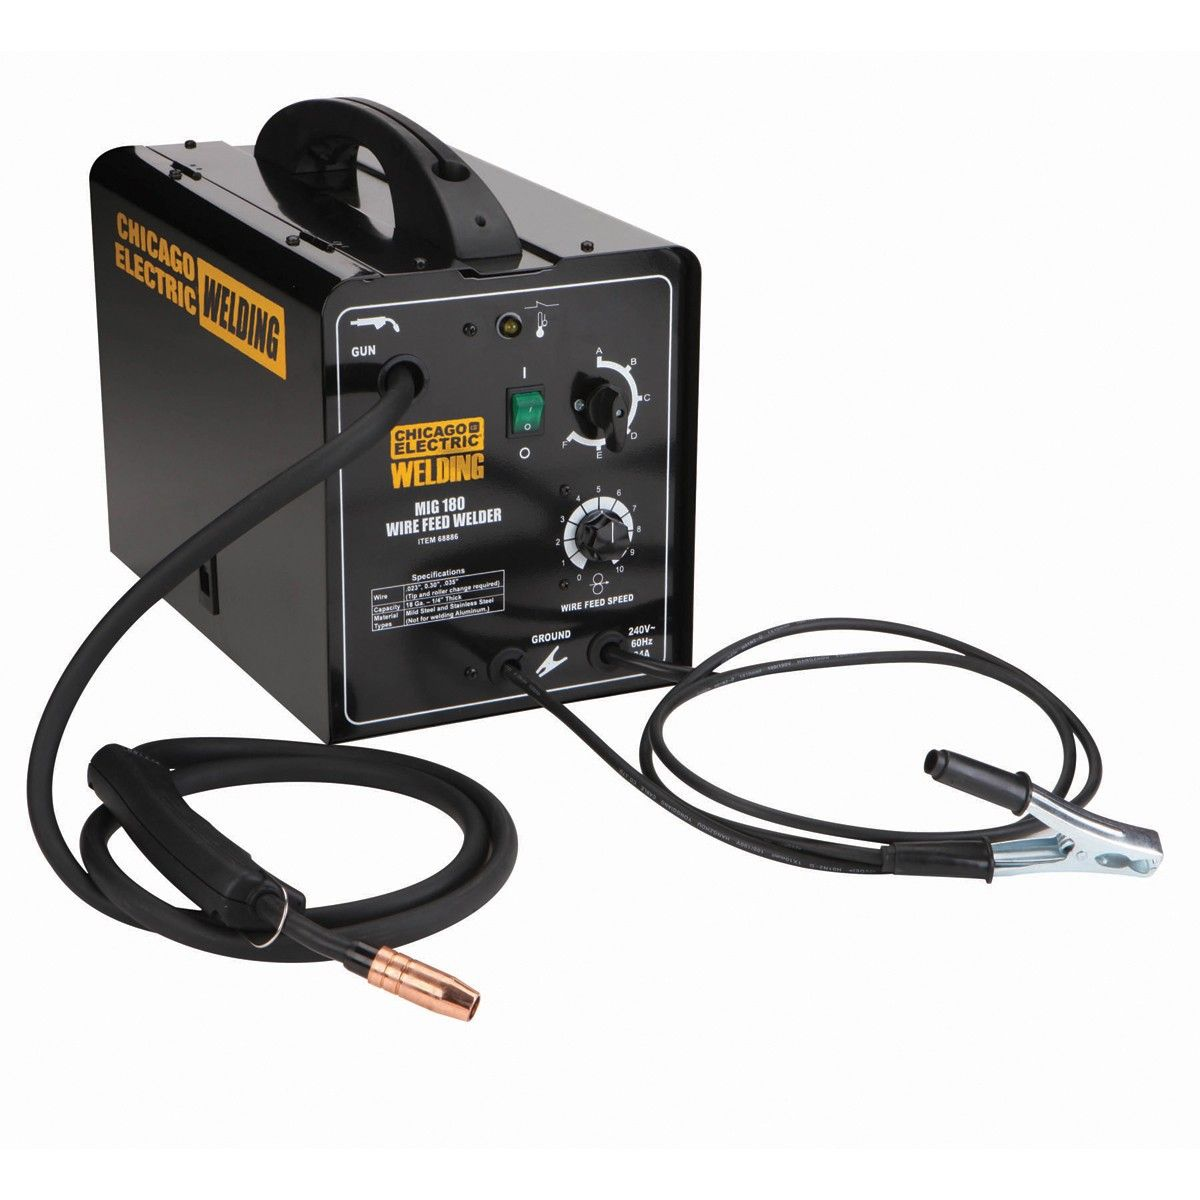 Harbor Freight 180 Amp Mig Flux Wire Feed Welder Under 300 Bucks